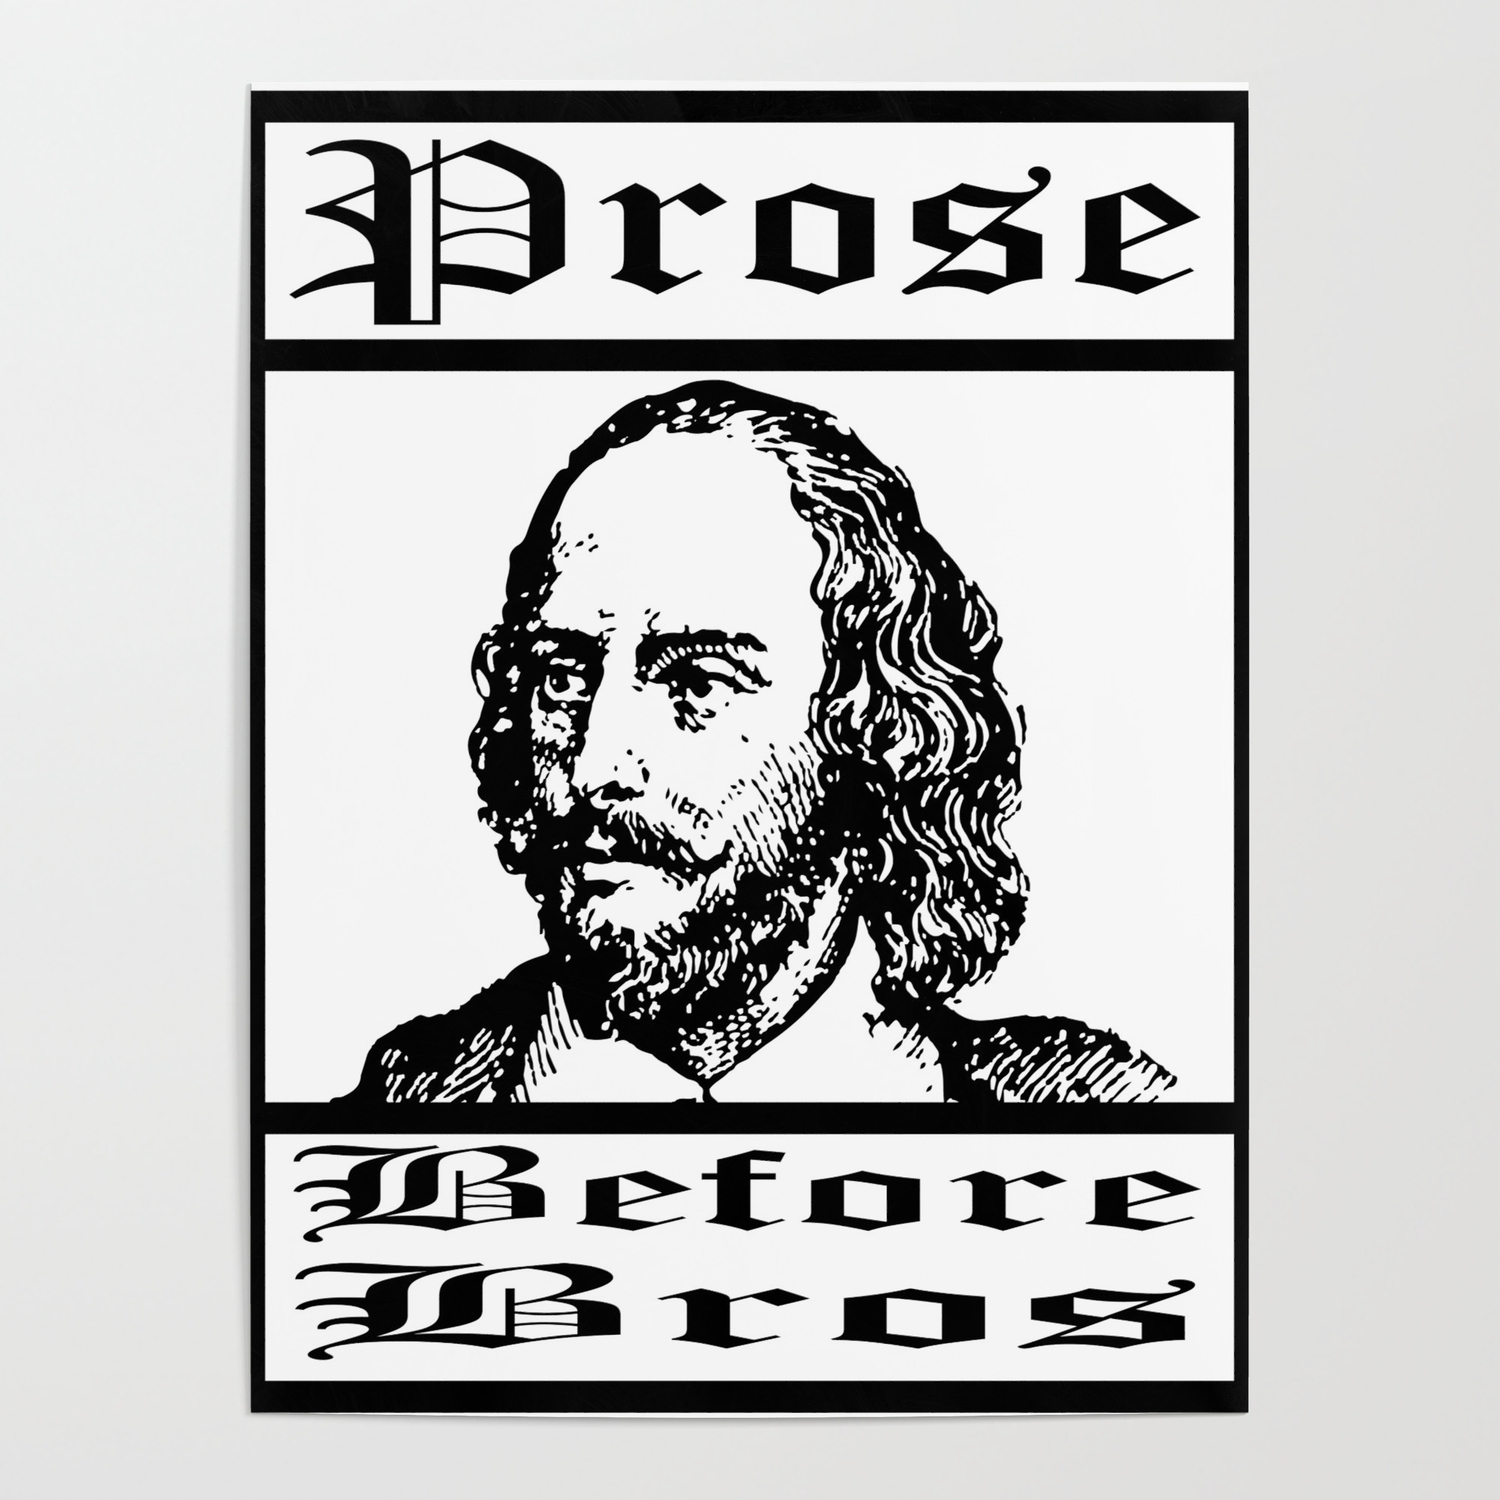 Funny Shakespeare Meme - Prose Before Bros Gift for English Teachers Poster  by trndsttr